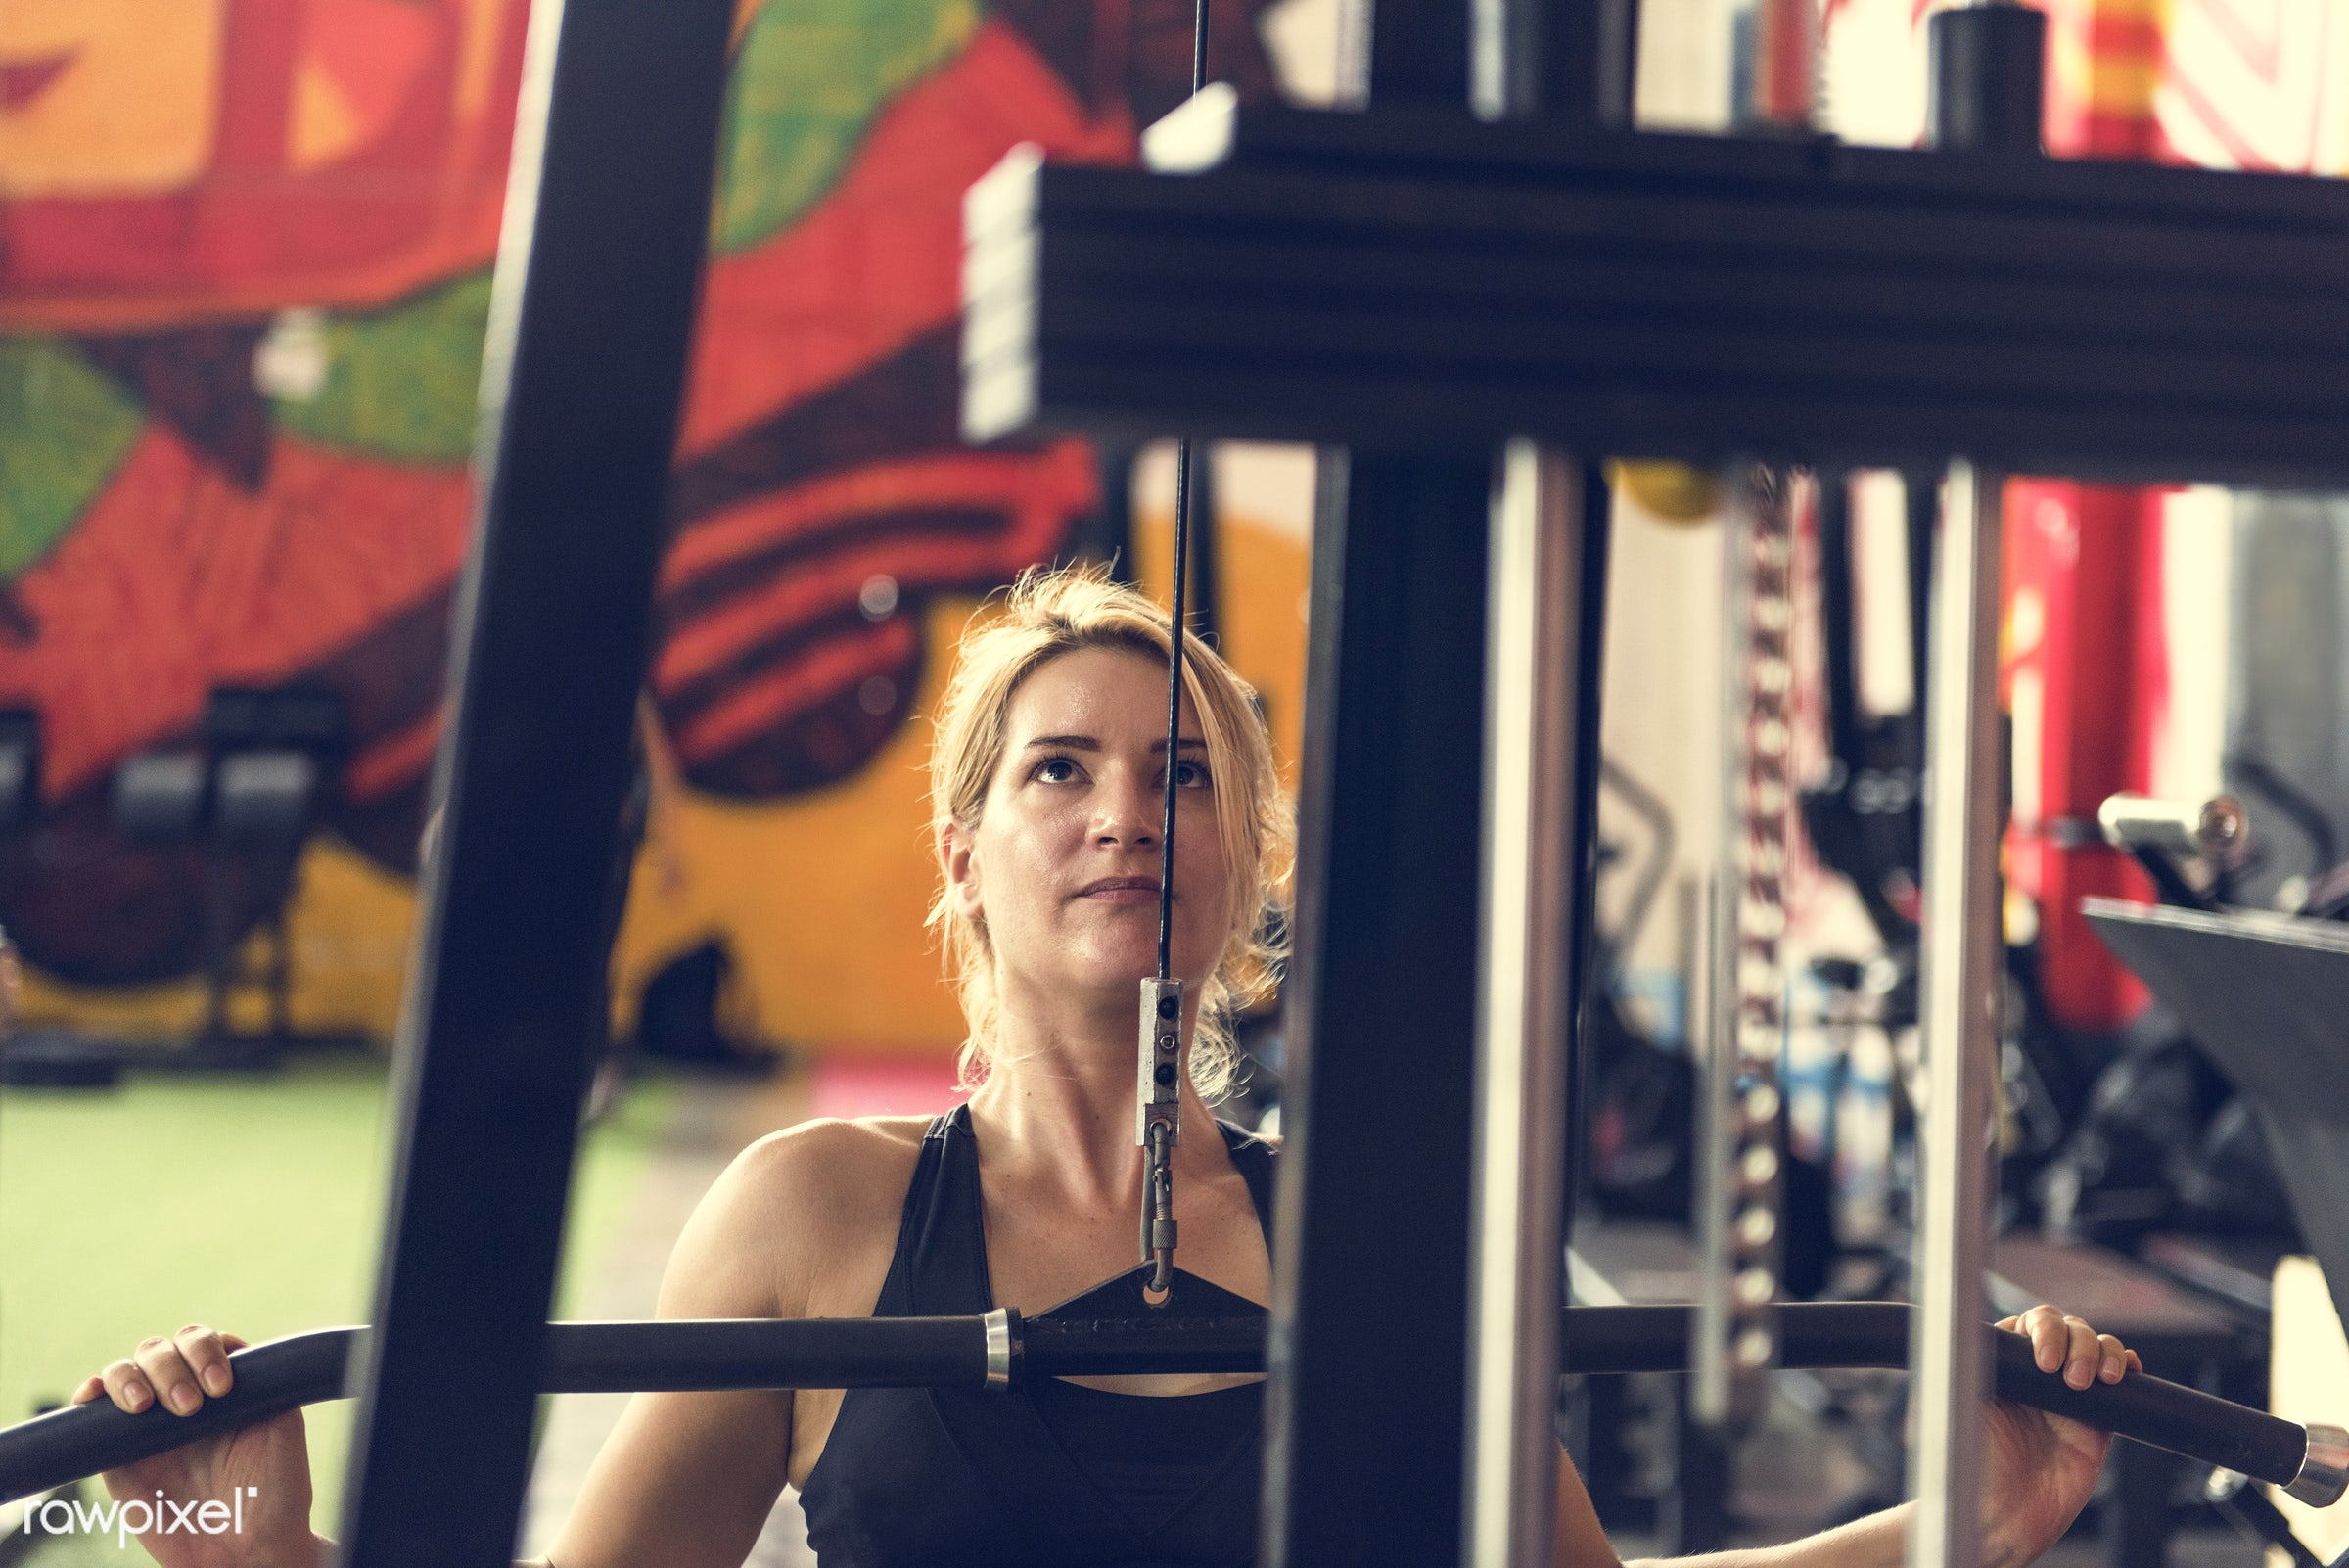 At the gym - active, activity, athlete, athletic, attractive, body, caucasian, concentration, equipment, exercise, female,...